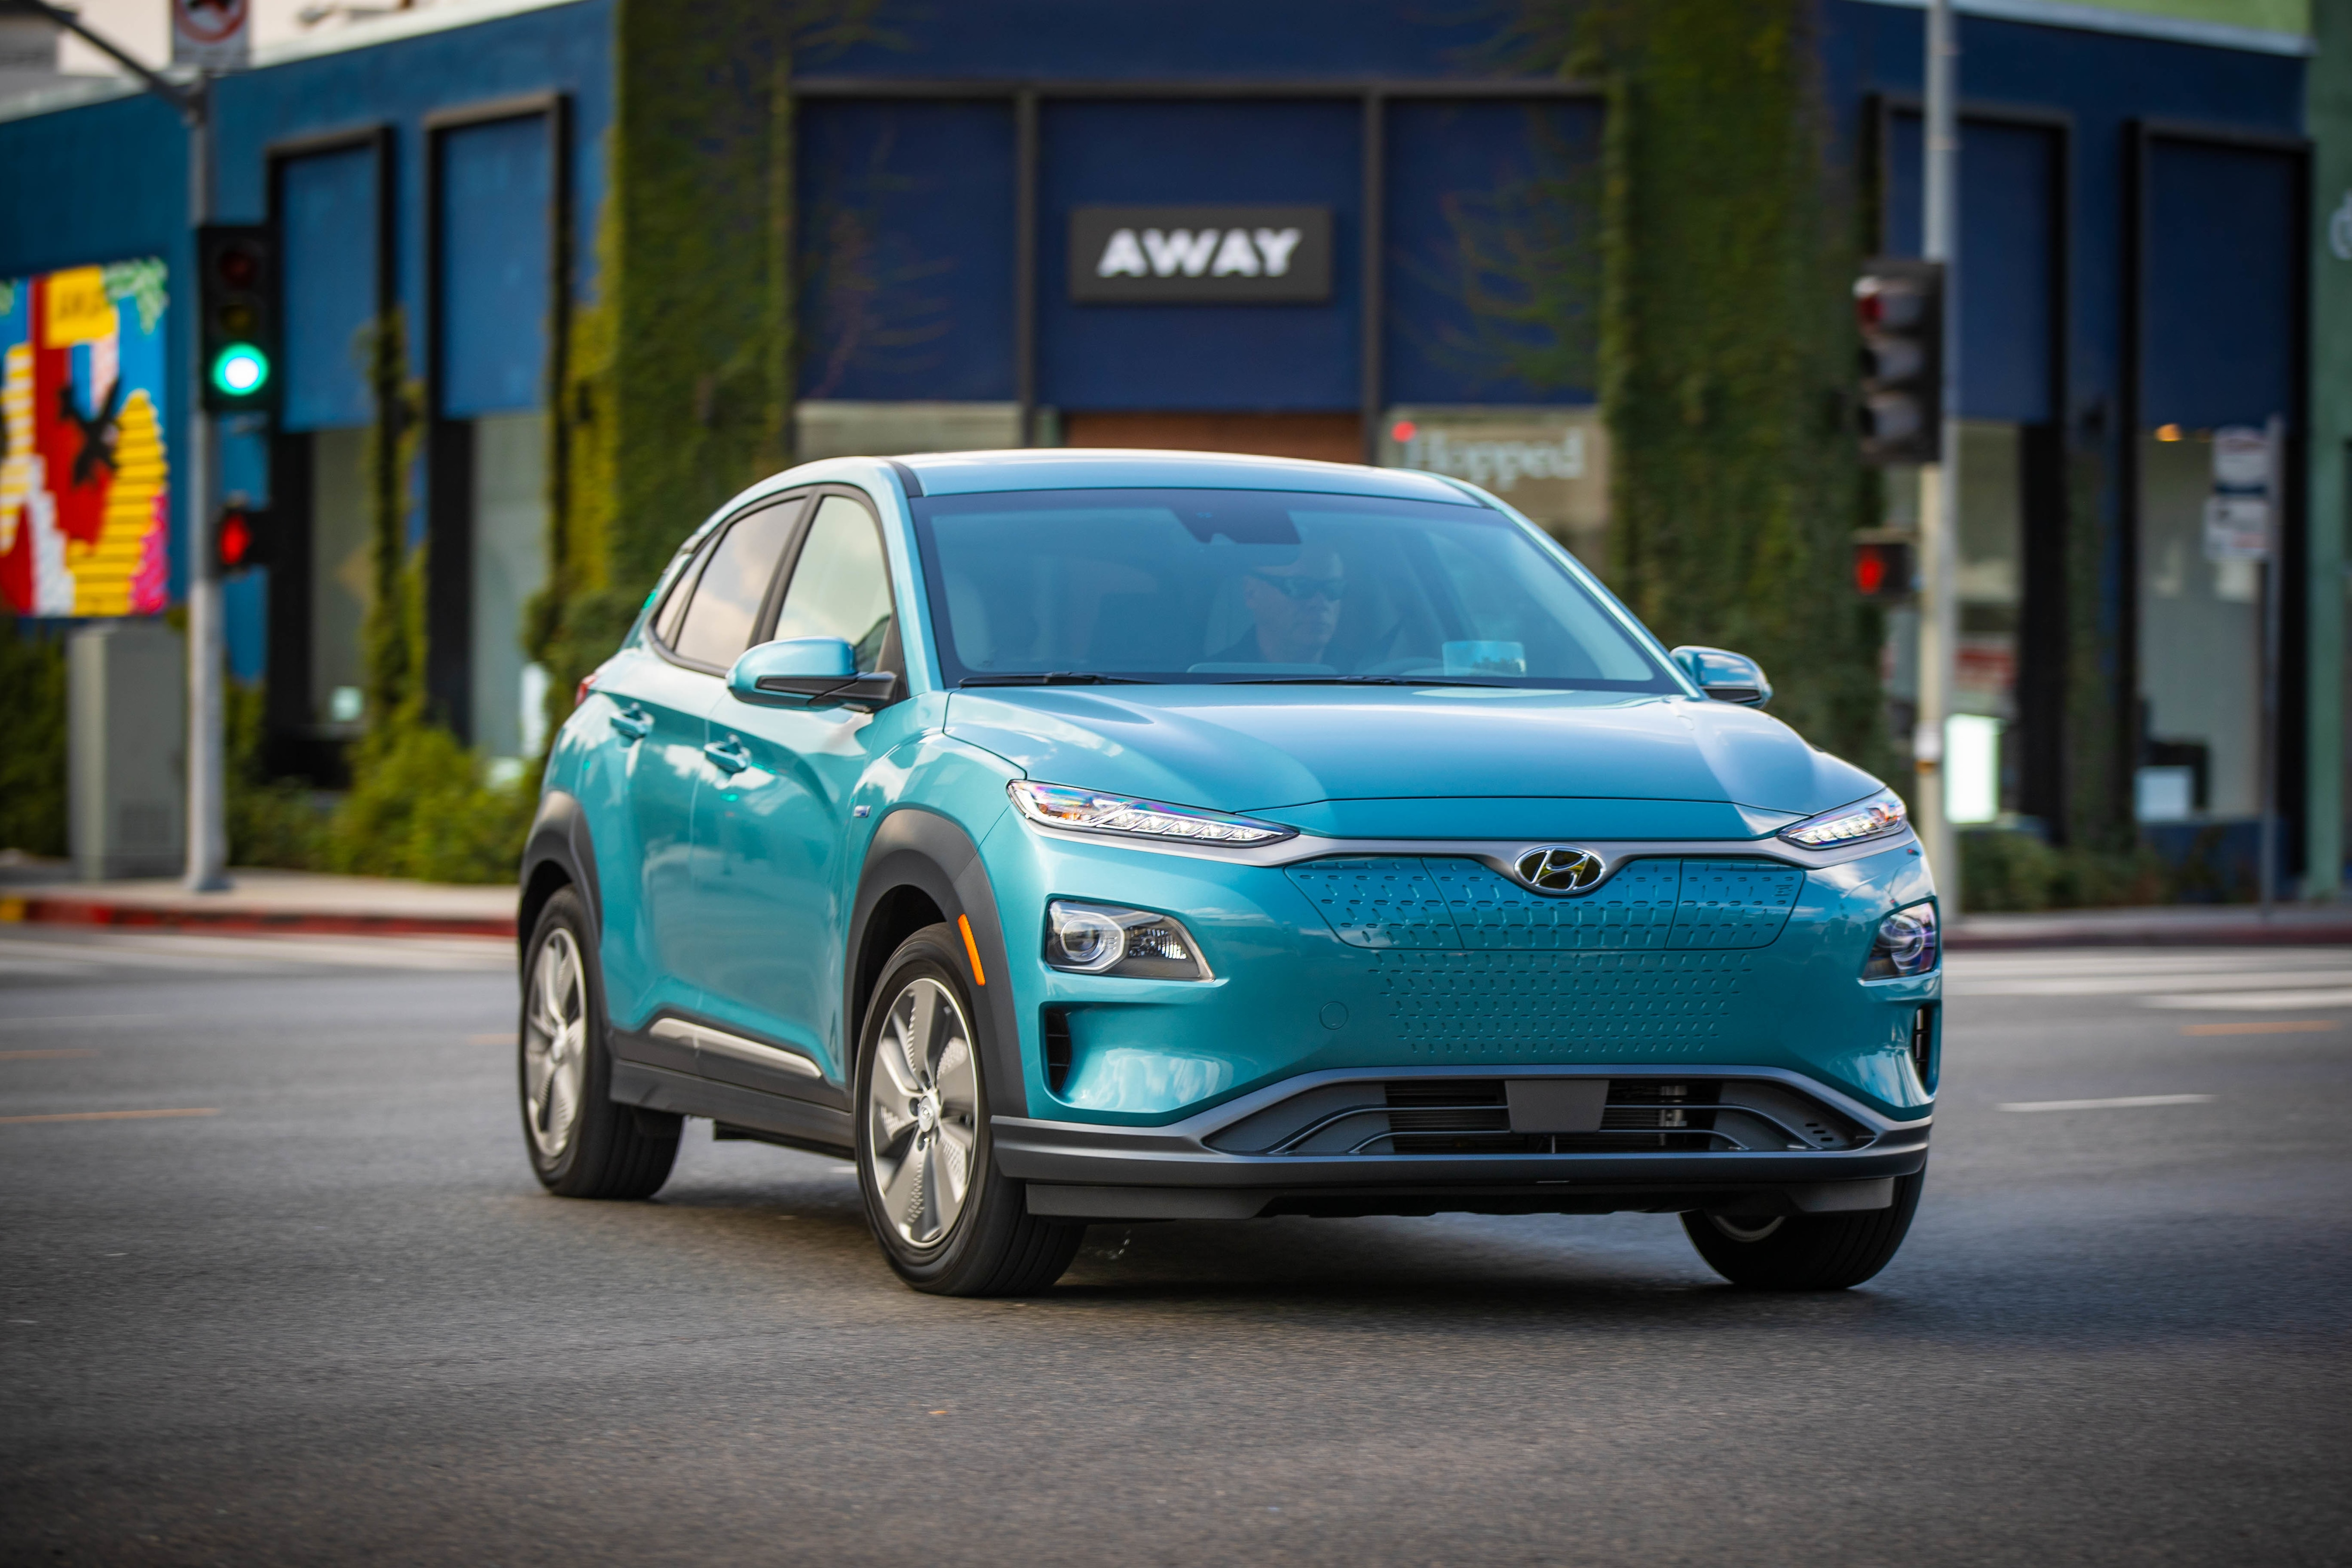 2019 Hyundai Kona and Kona Electric CUV Named a Finalist for Prestigious North American Utility Vehicle of the Year